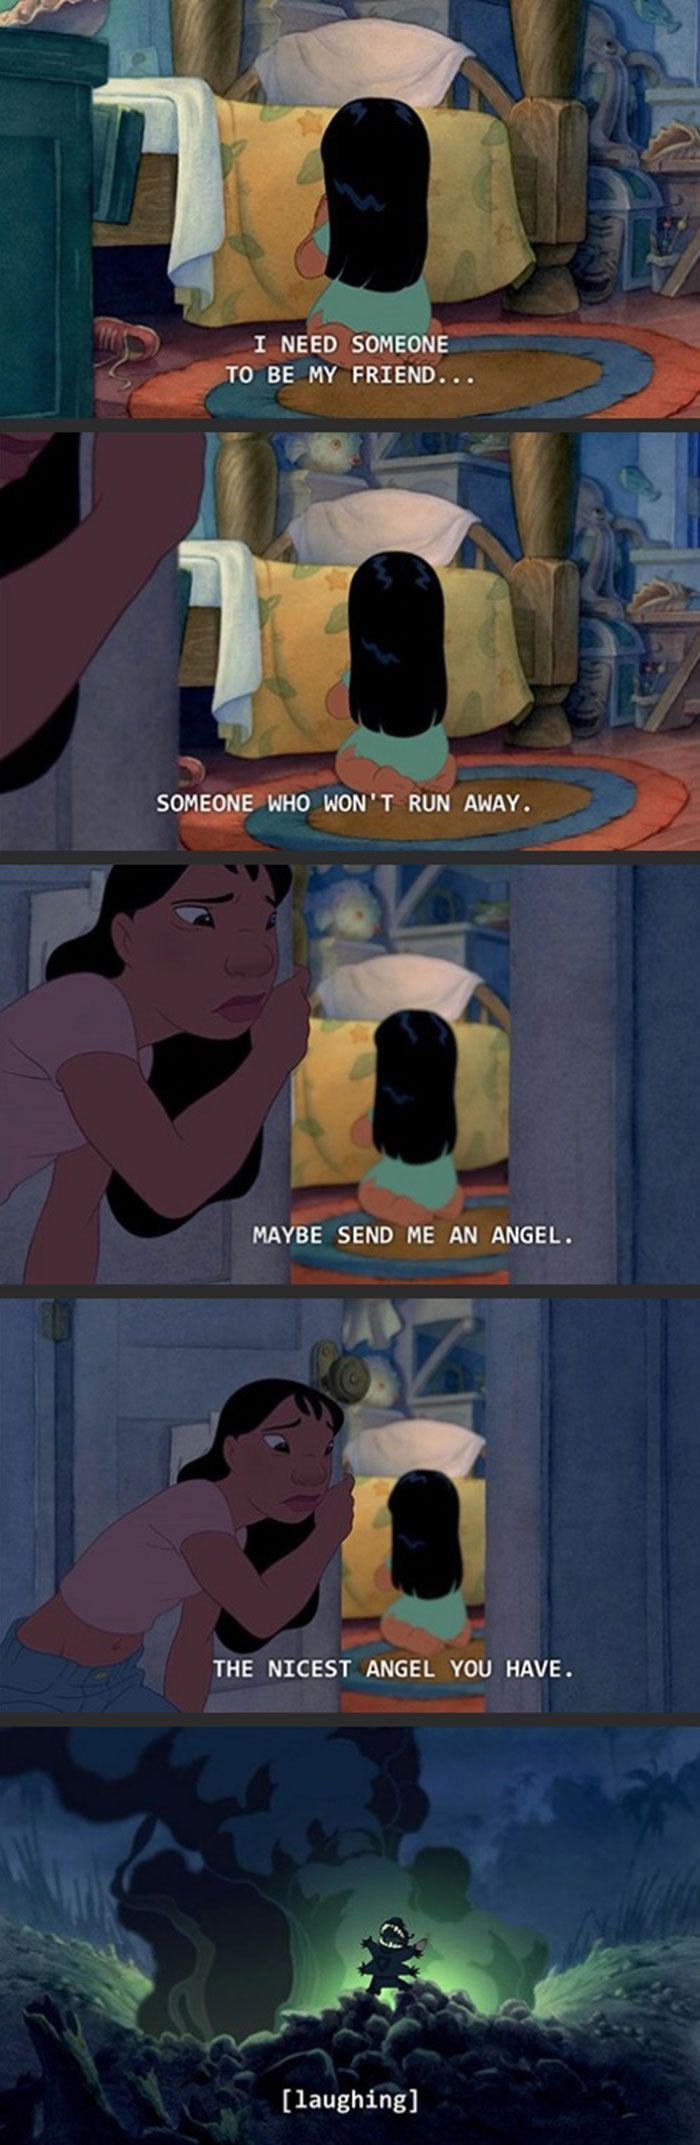 I think I need to watch Lilo and Stitch again...